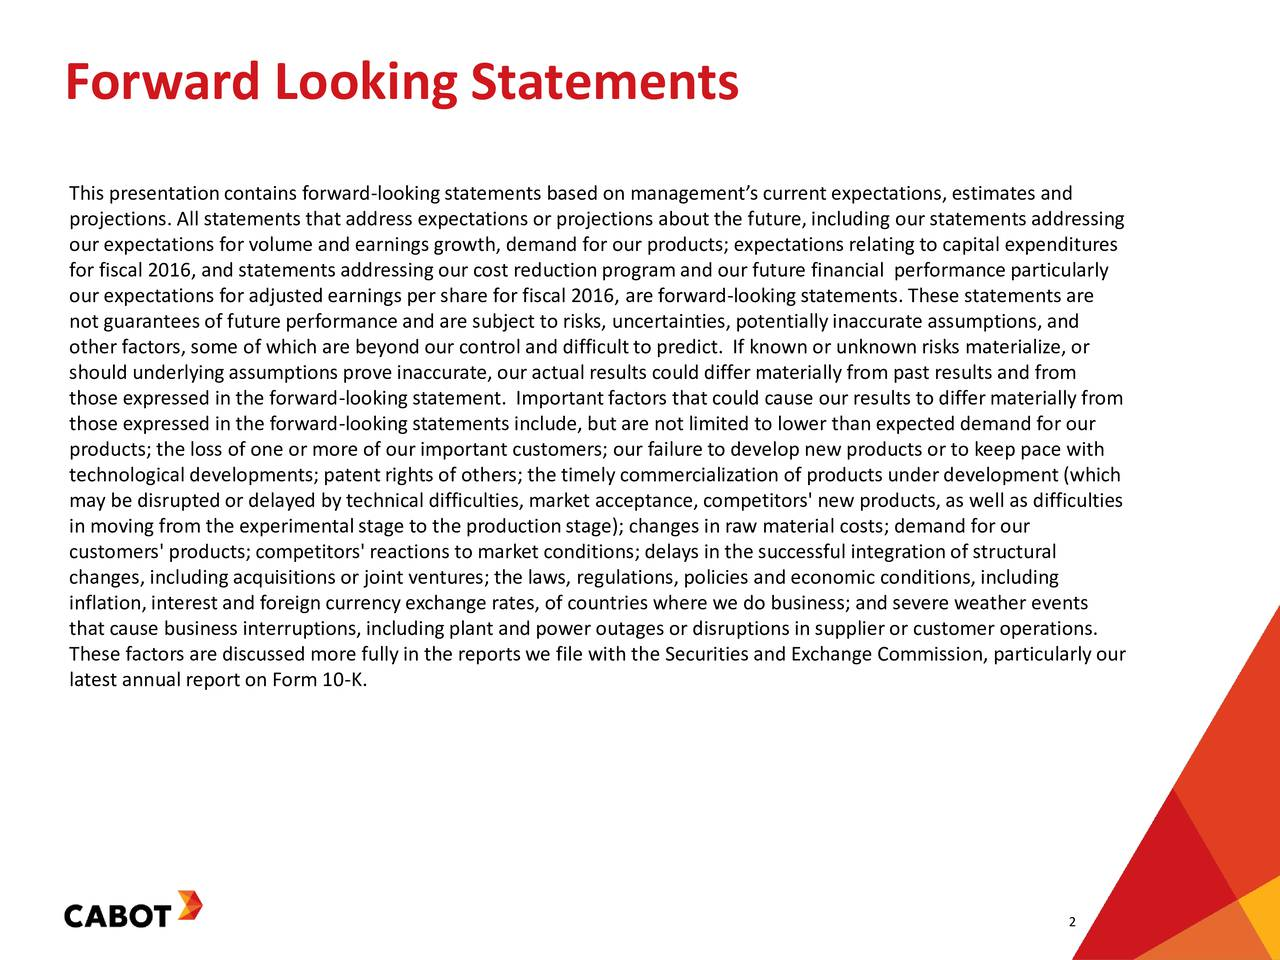 This presentationcontains forward-lookingstatements based on managements current expectations, estimates and projections. All statements that address expectations or projections about the future, including our statements addressing our expectations for volume and earnings growth, demand for our products; expectations relatingto capital expenditures for fiscal 2016, and statements addressingour cost reduction program and our future financial performance particularly our expectations for adjusted earnings per share for fiscal 2016, are forward-lookingstatements. These statements are not guaranteesof future performance and are subject to risks, uncertainties, potentiallyinaccurate assumptions, and other factors, some of which are beyond our control and difficultto predict. If known or unknown risks materialize, or should underlyingassumptions prove inaccurate, our actual results could differmaterially from past results and from those expressed in the forward-lookingstatement. Importantfactors that could cause our results to differ materially from those expressed in the forward-lookingstatements include, but are not limited to lower than expected demand for our products; the loss of one or more of our important customers; our failure to develop new products or to keep pace with technological developments; patentrights of others; the timely commercialization of products underdevelopment (which may be disruptedor delayed by technical difficulties, market acceptance, competitors' new products, as well as difficulties in moving from the experimental stage to the productionstage); changes in raw material costs; demand for our customers' products; competitors' reactions to market conditions; delays in the successful integrationof structural changes, includingacquisitions or joint ventures; the laws, regulations, policies and economic conditions, including inflation, interest and foreign currency exchange rates, of countries where we do business; and severe weather events that